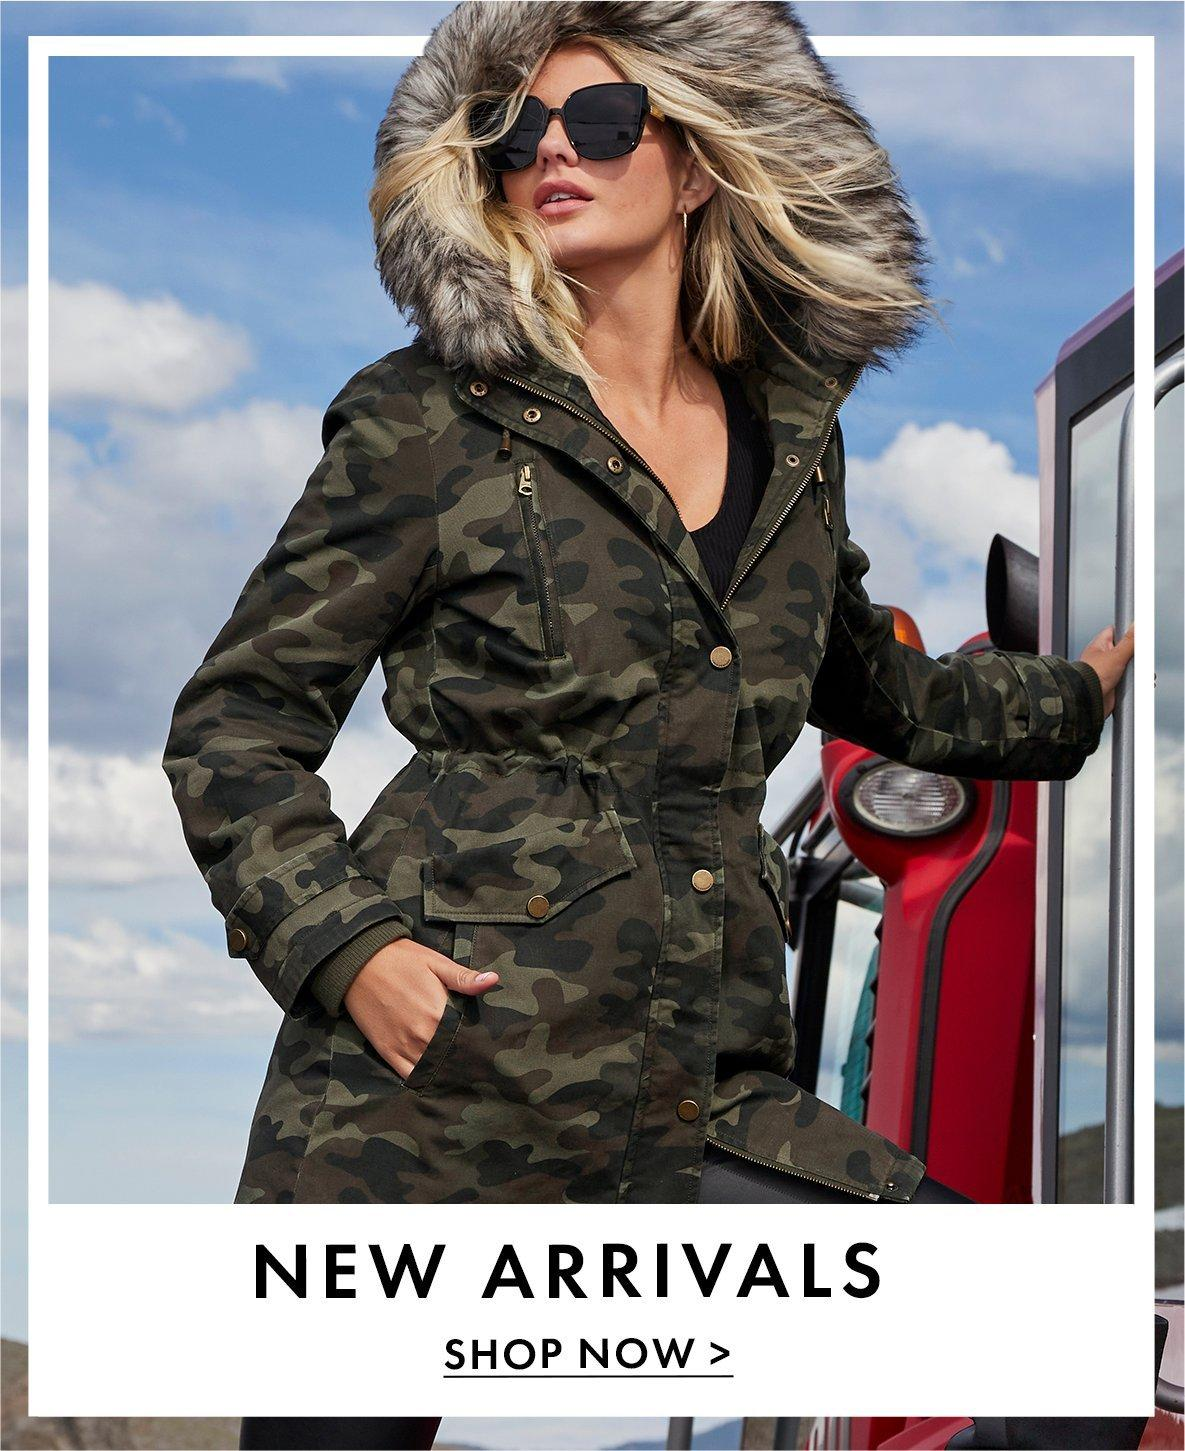 model wearing a camouflage faux fur coat and sunglasses. text: new arrivals. shop now.